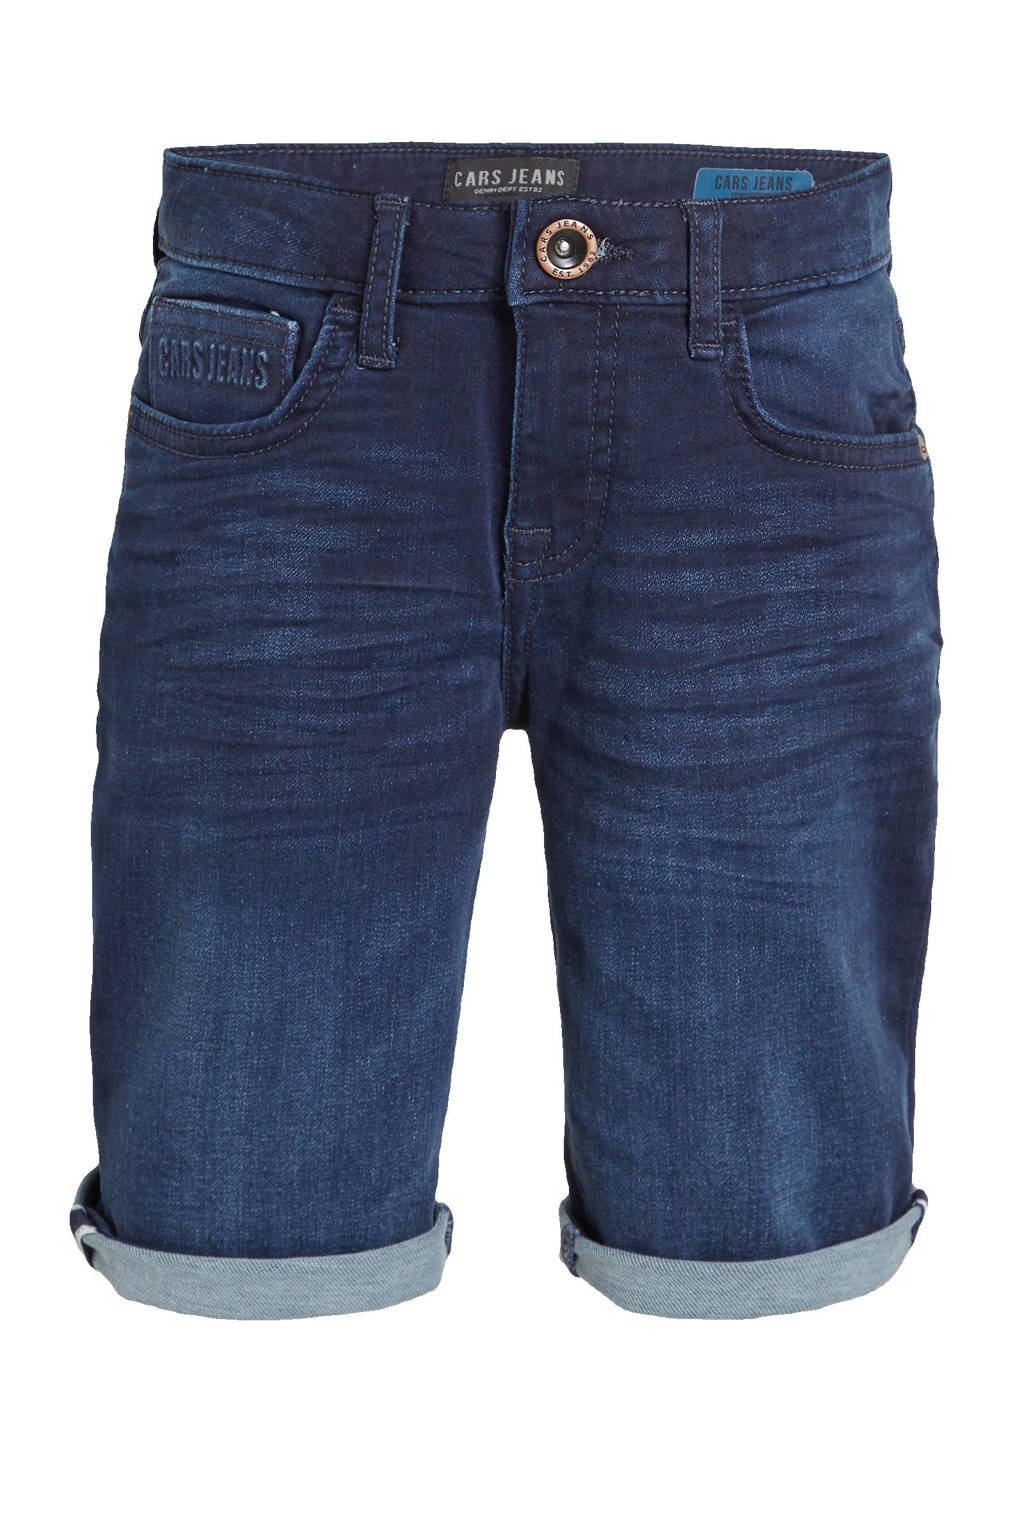 Cars regular fit jeans bermuda Seatle dark used, Dark used